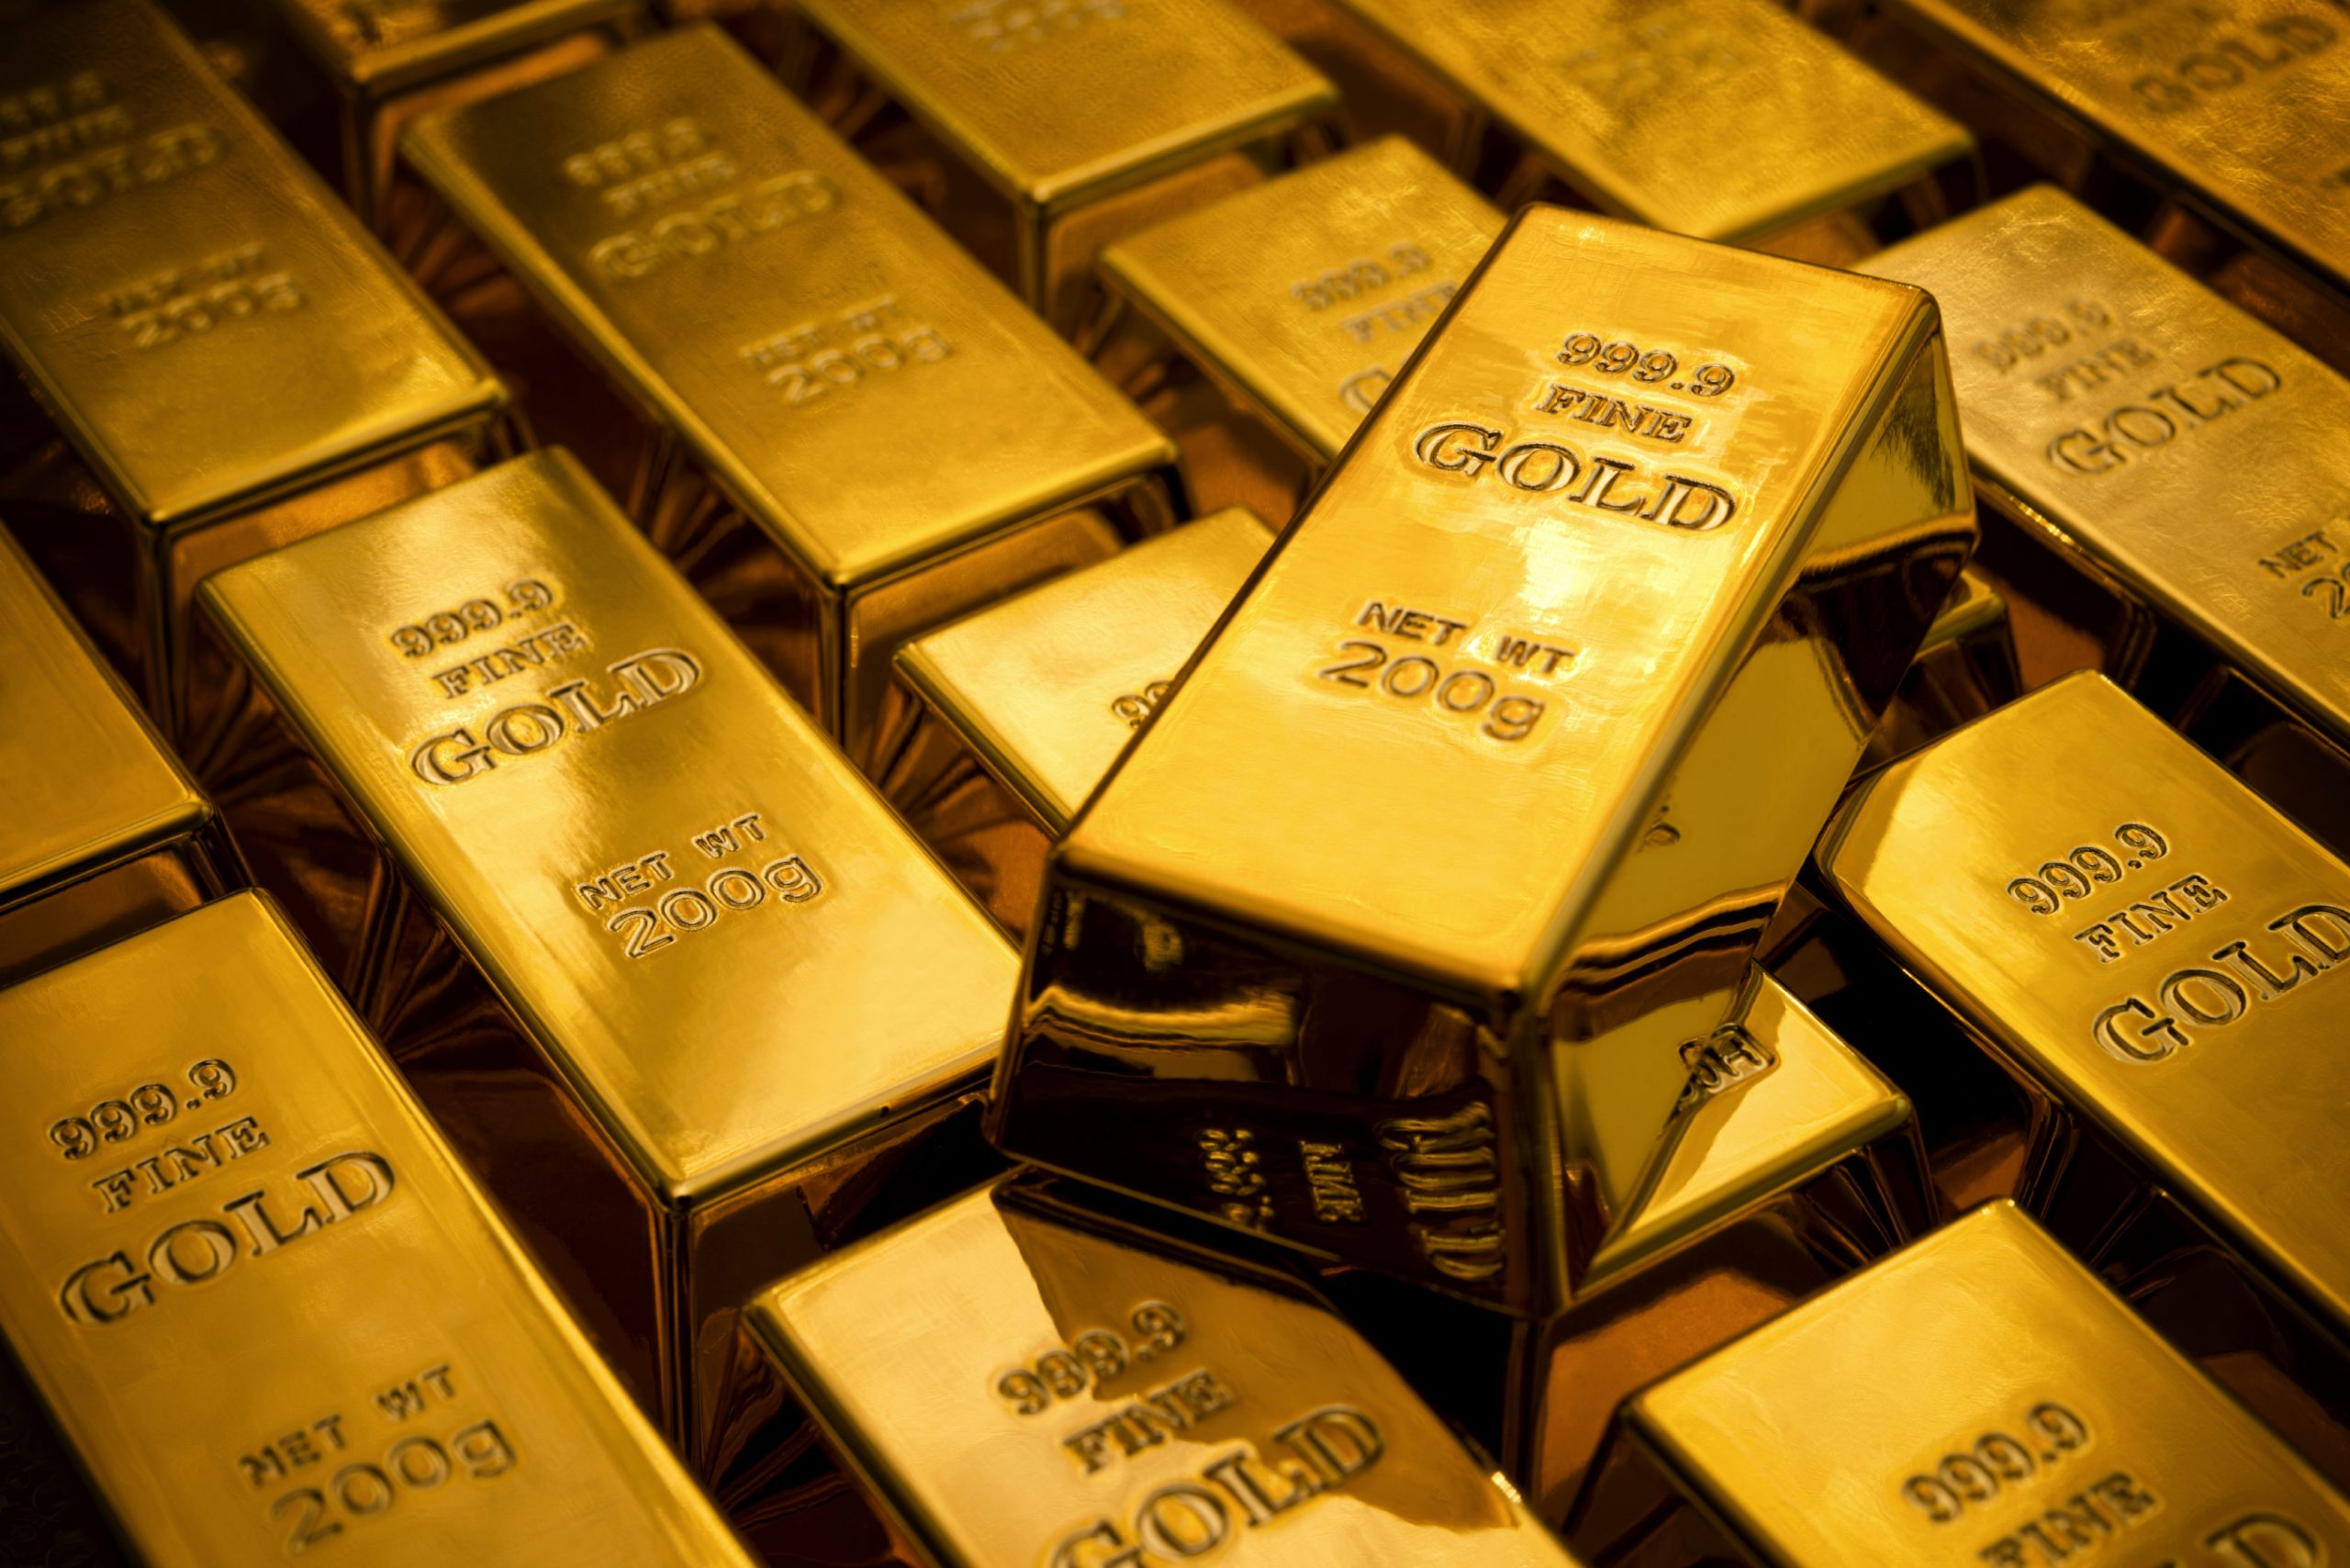 Consumer buys gold while institutions sell; gold demand remains stable: World Gold Council